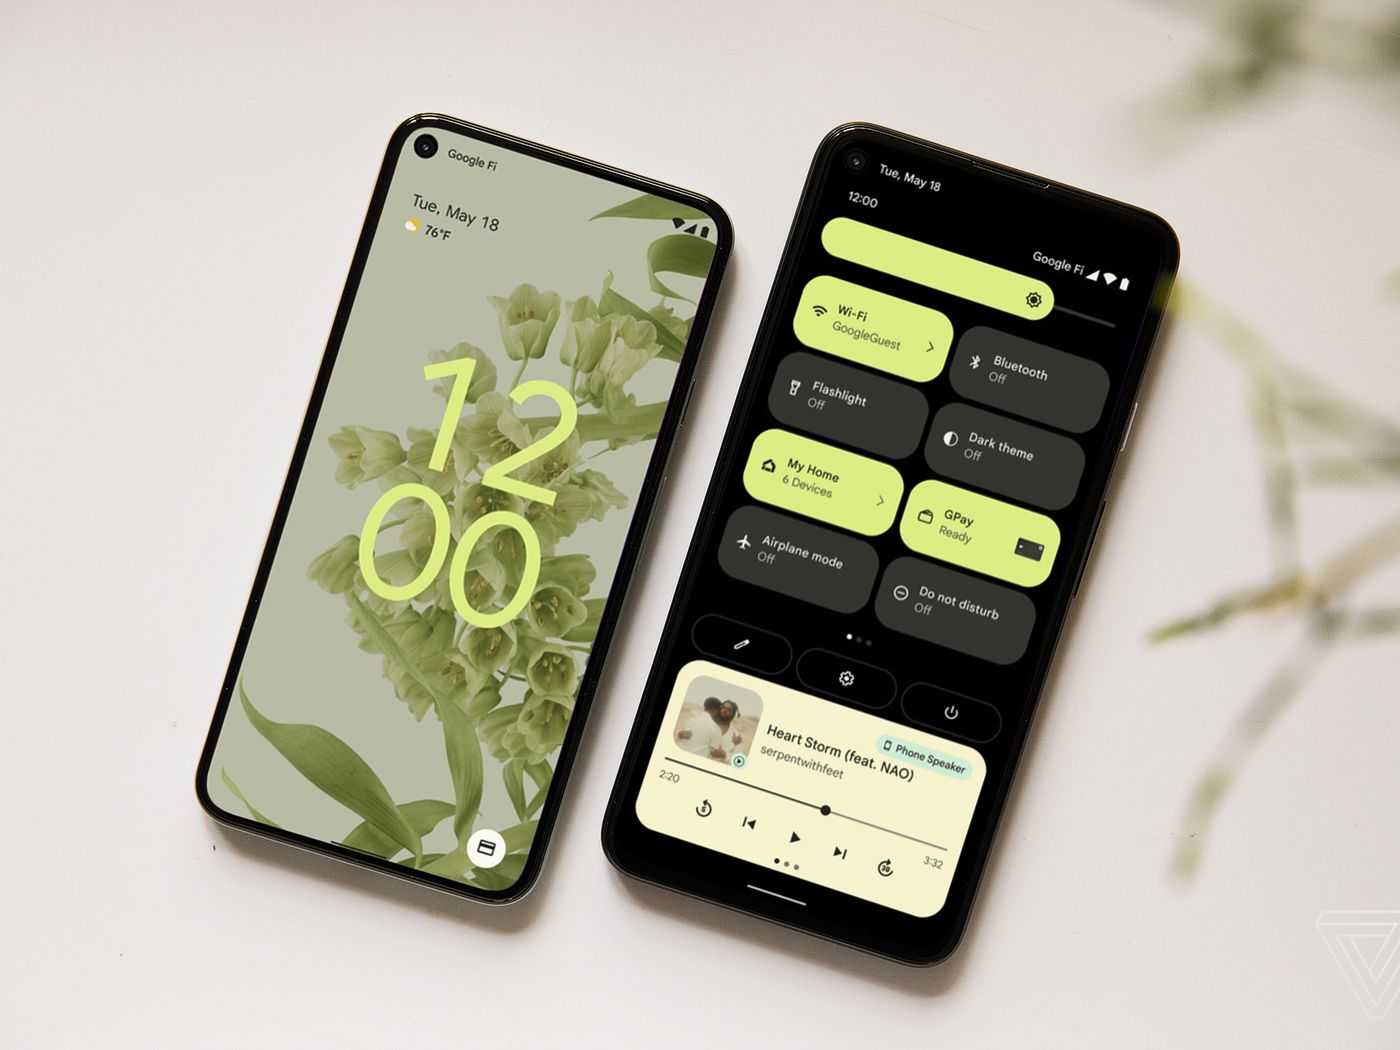 17+ How Do I Get Google Wallpaper On My Iphone Images